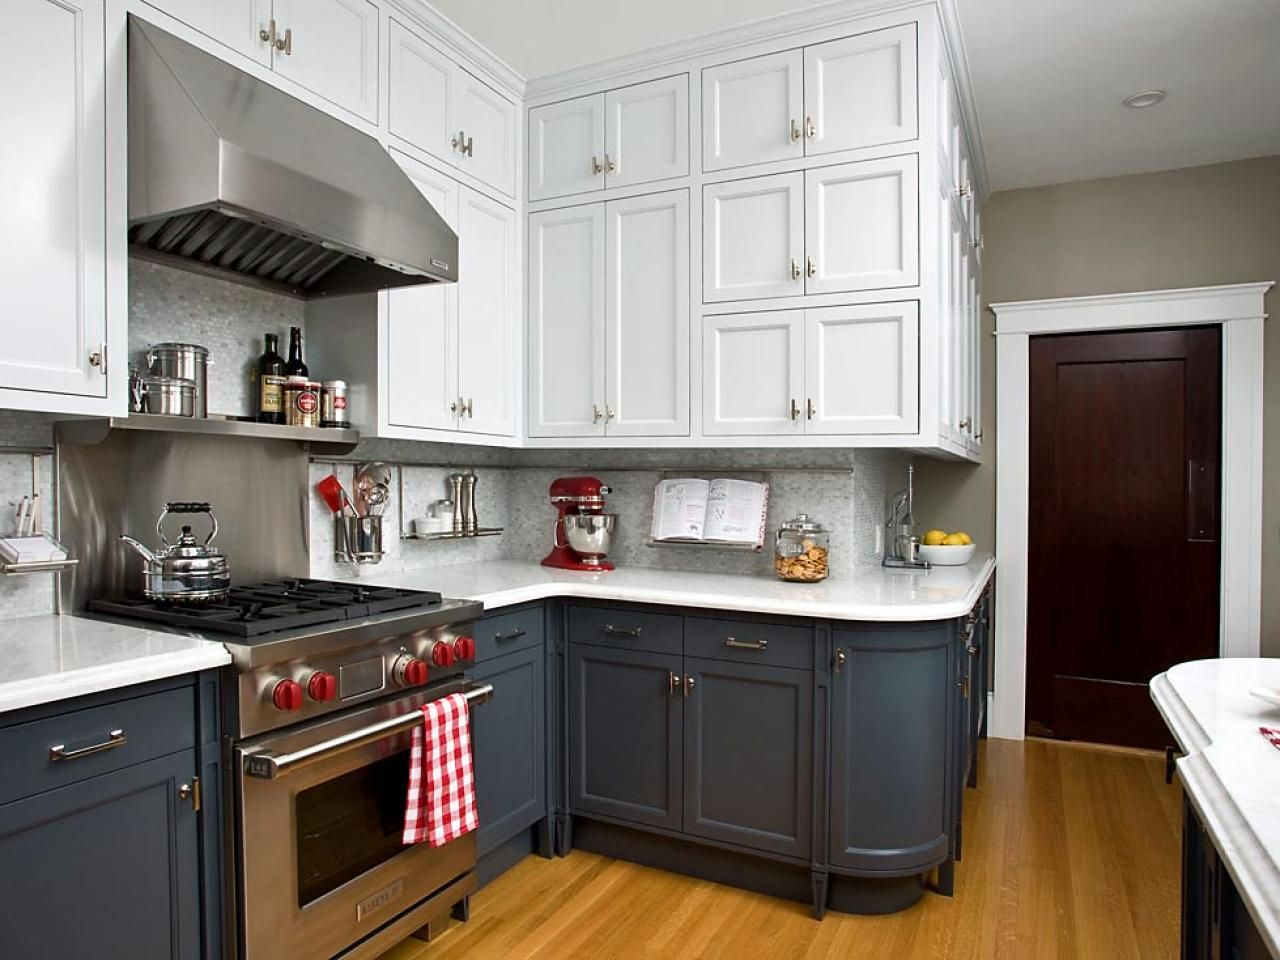 Mixing Kitchen Cabinet Styles and Finishes | Kitchen cabinet styles ...